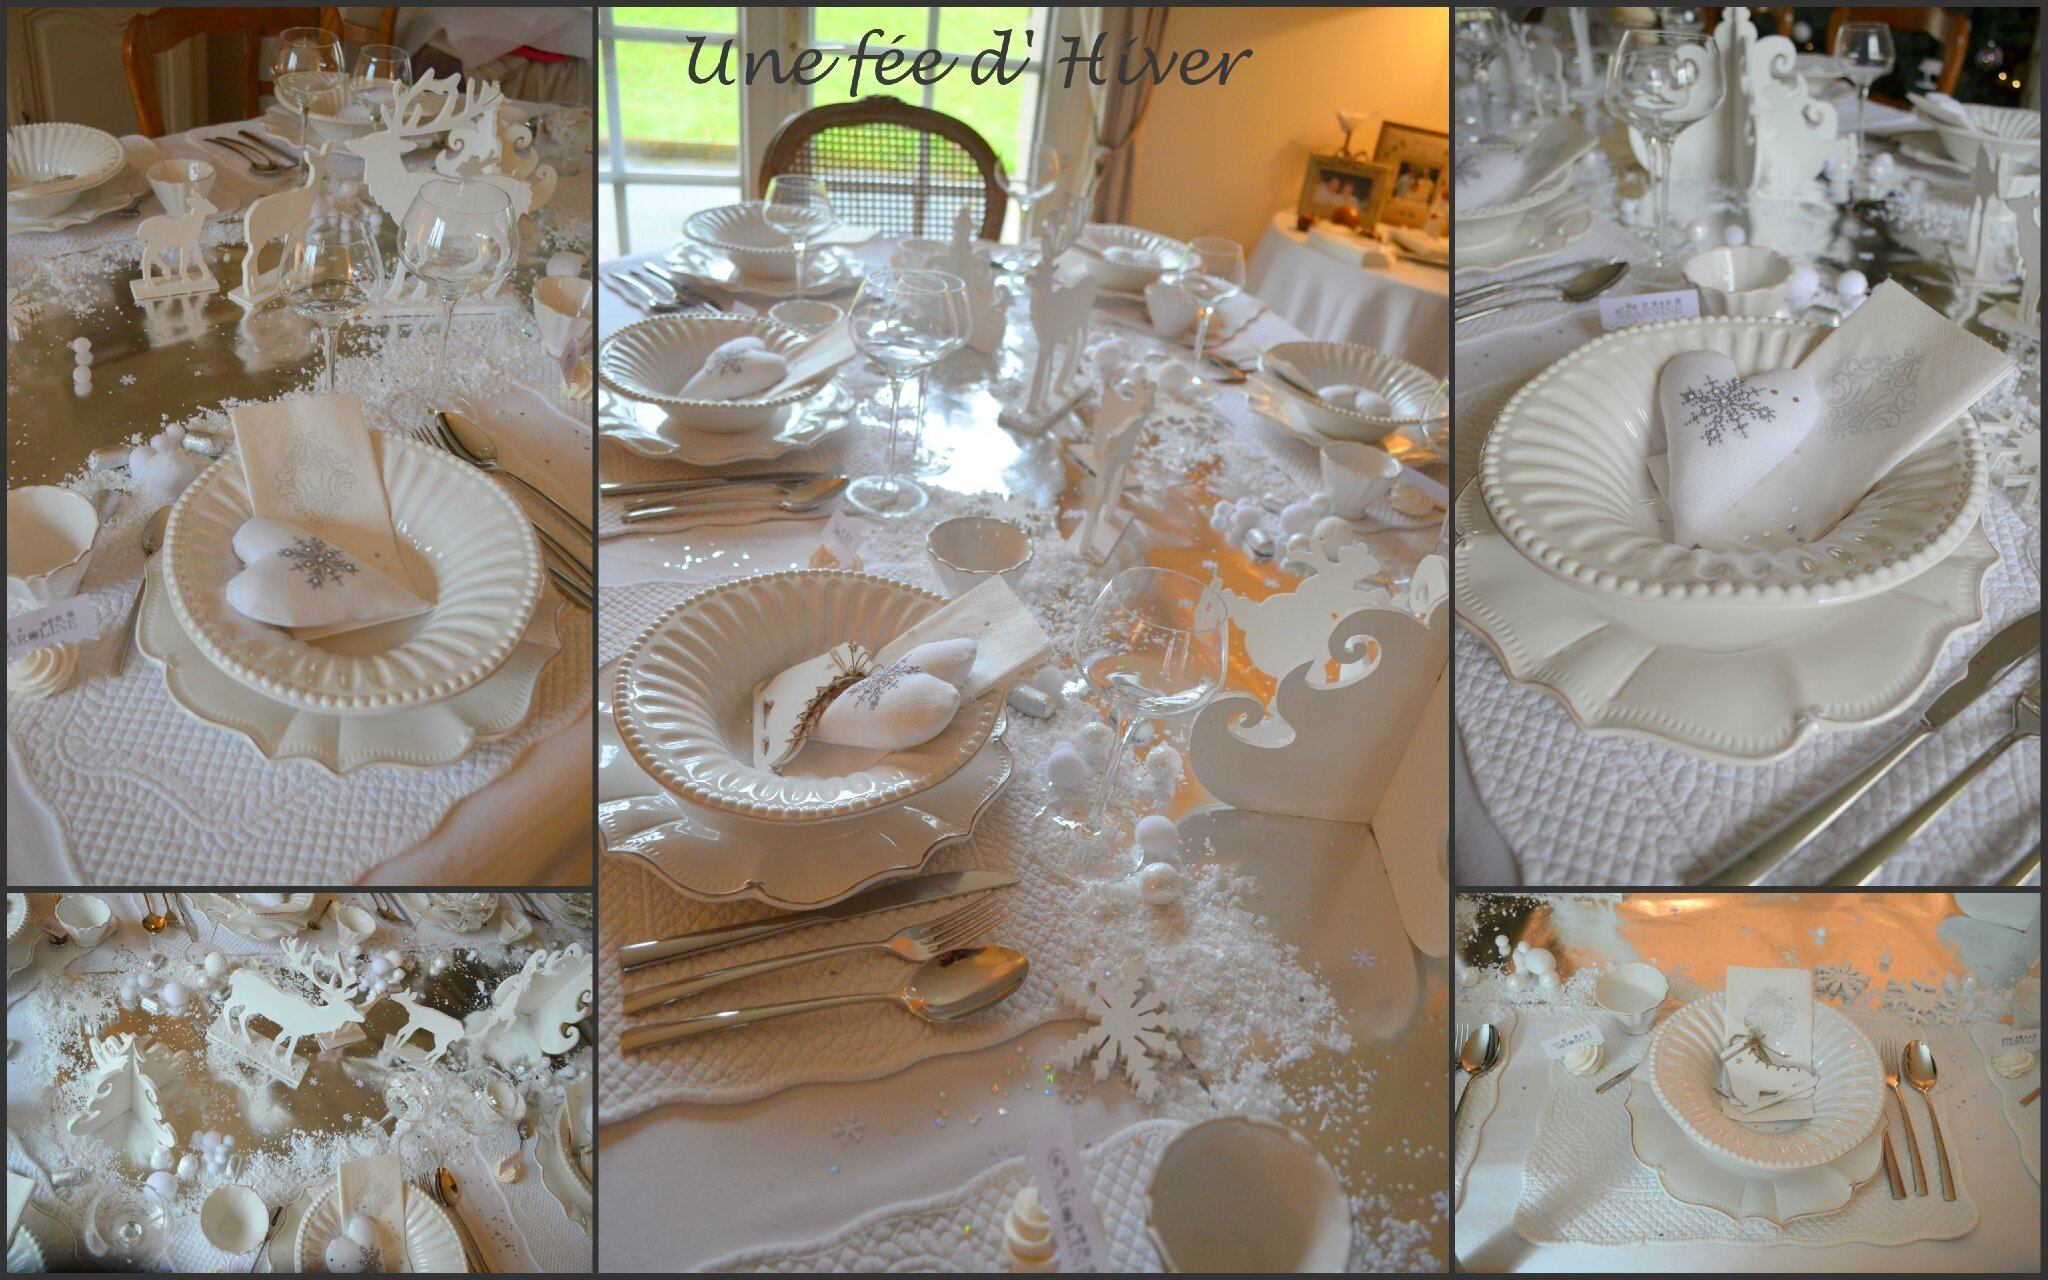 La deco de table pour le reveillon de noel une fee for Table de noel chic